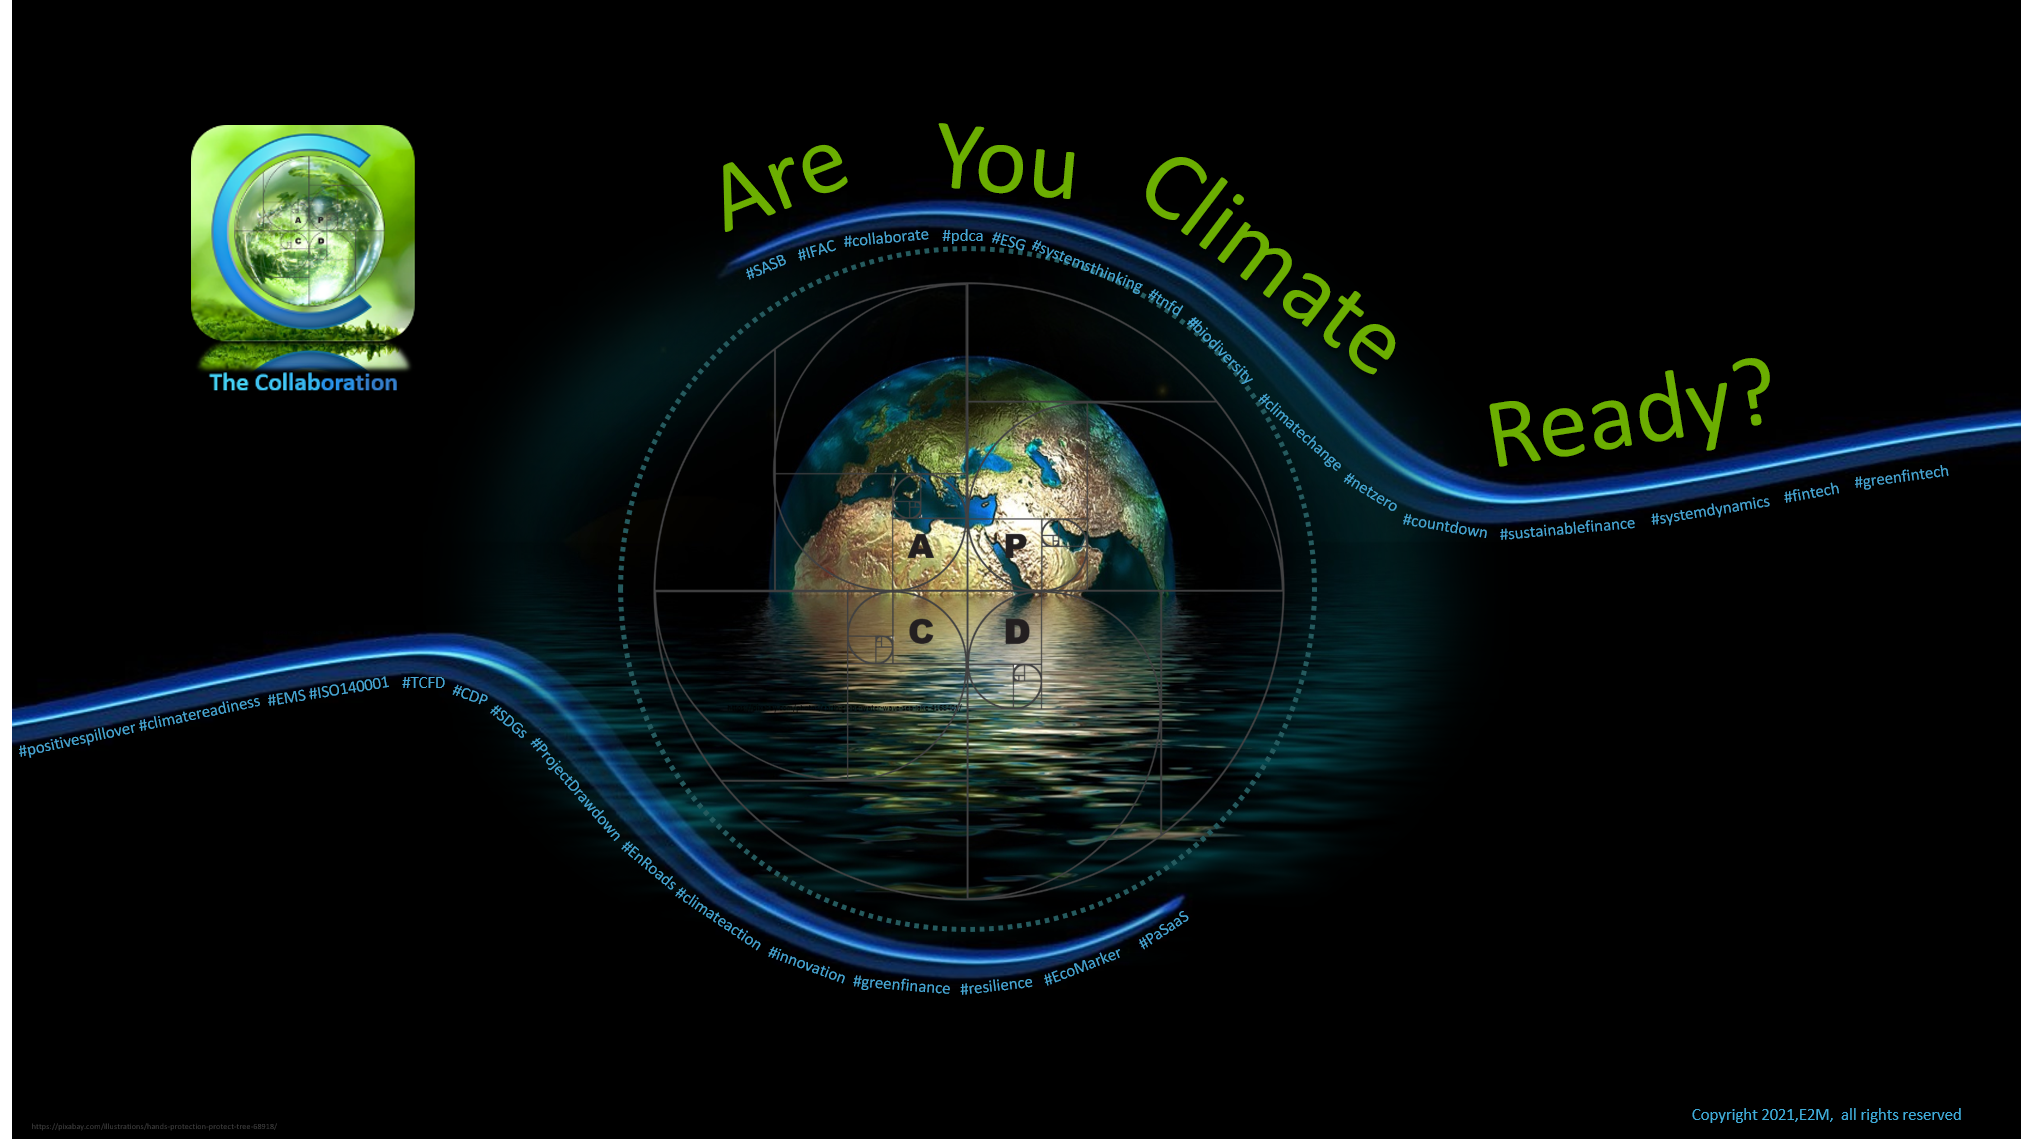 Are You Climate Ready?